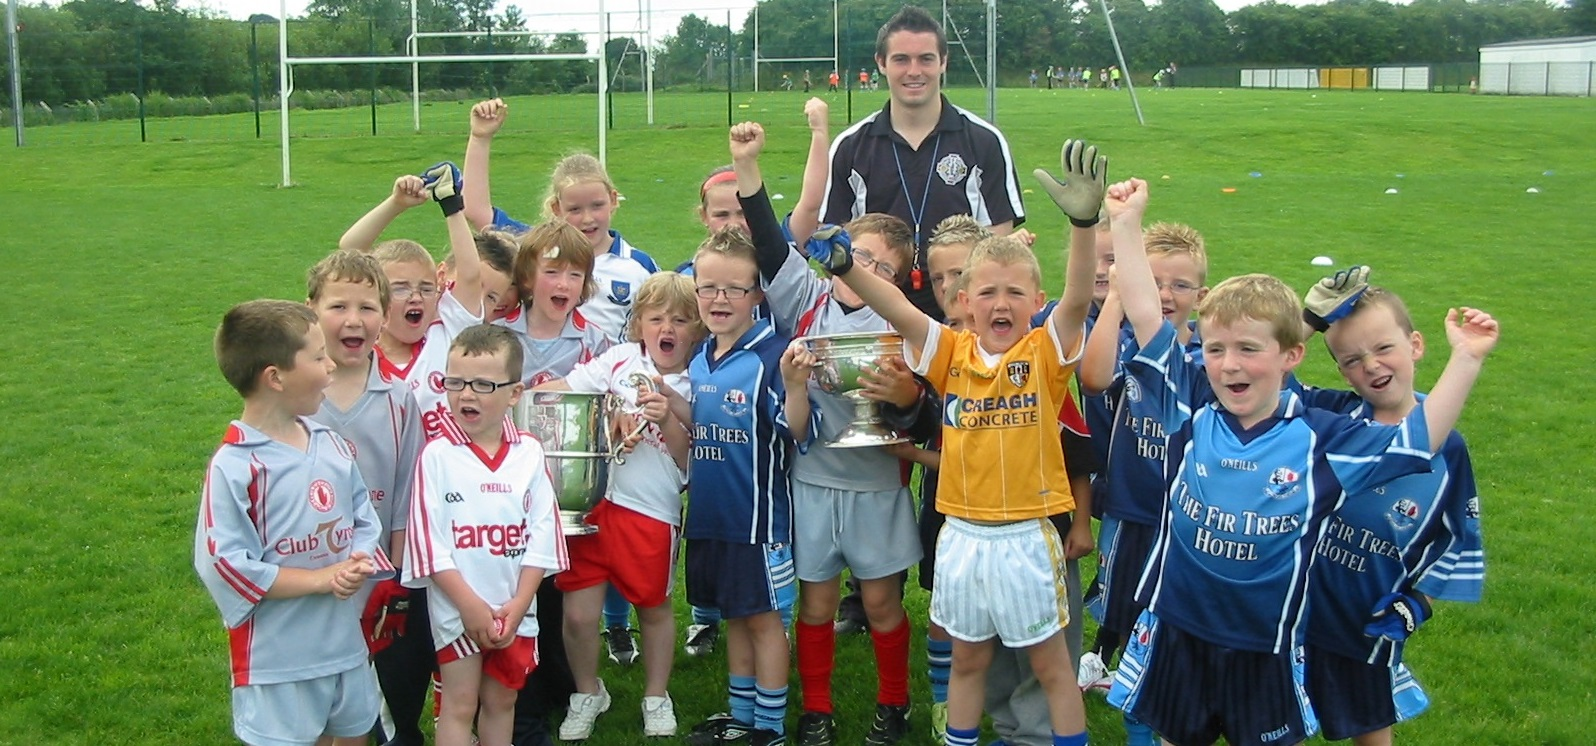 Ulster Cups Visit Summer Camp